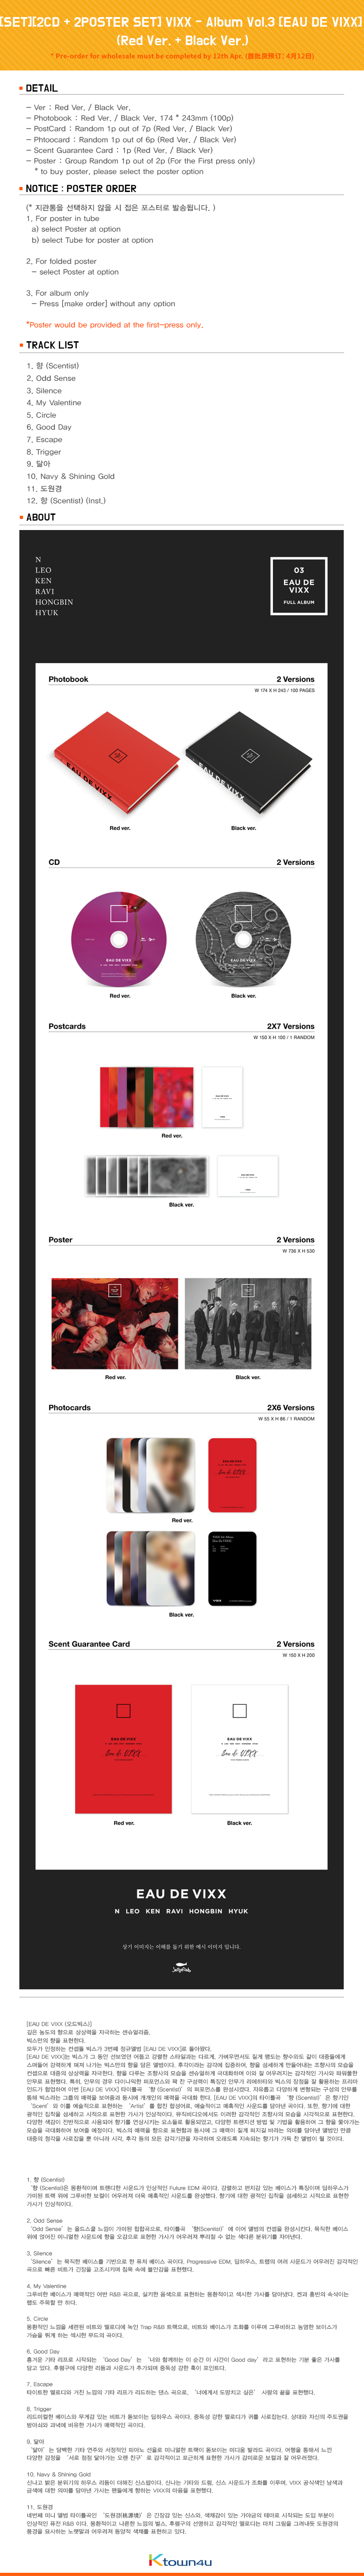 [SET][2CD + 2POSTER SET] VIXX - Album Vol.3 [EAU DE VIXX] (Red Ver. + Black Ver.)